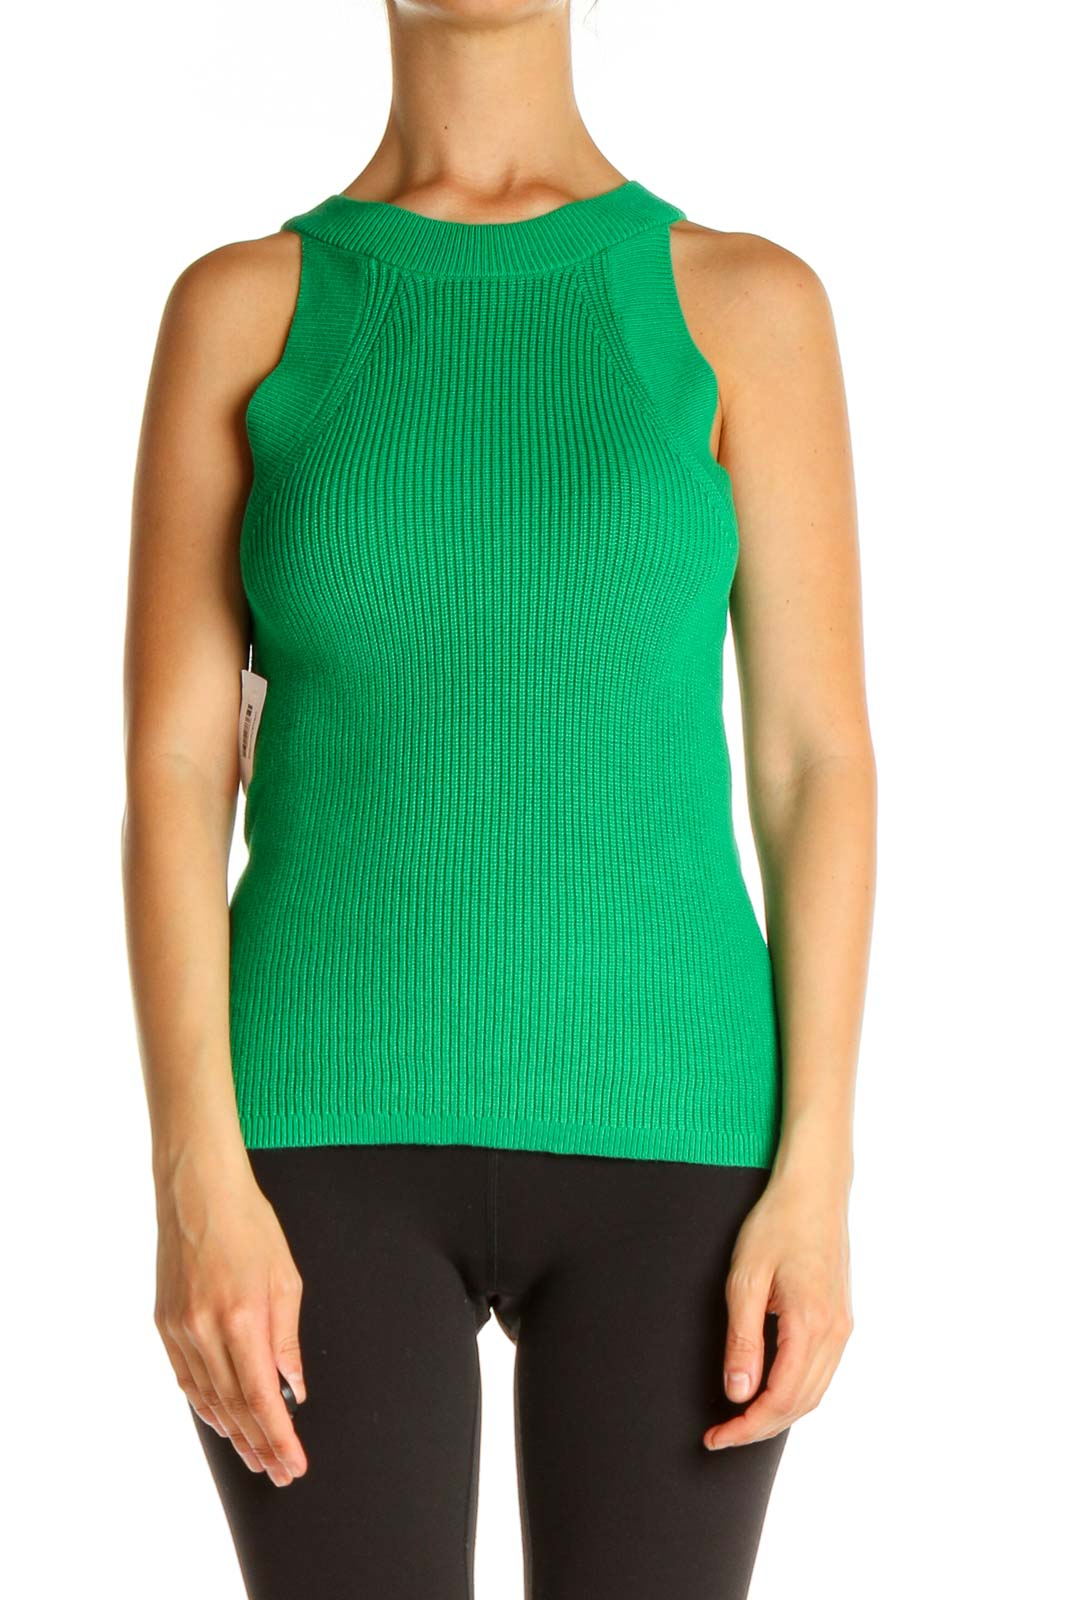 Green Solid All Day Wear Sleeveless Sweater Front